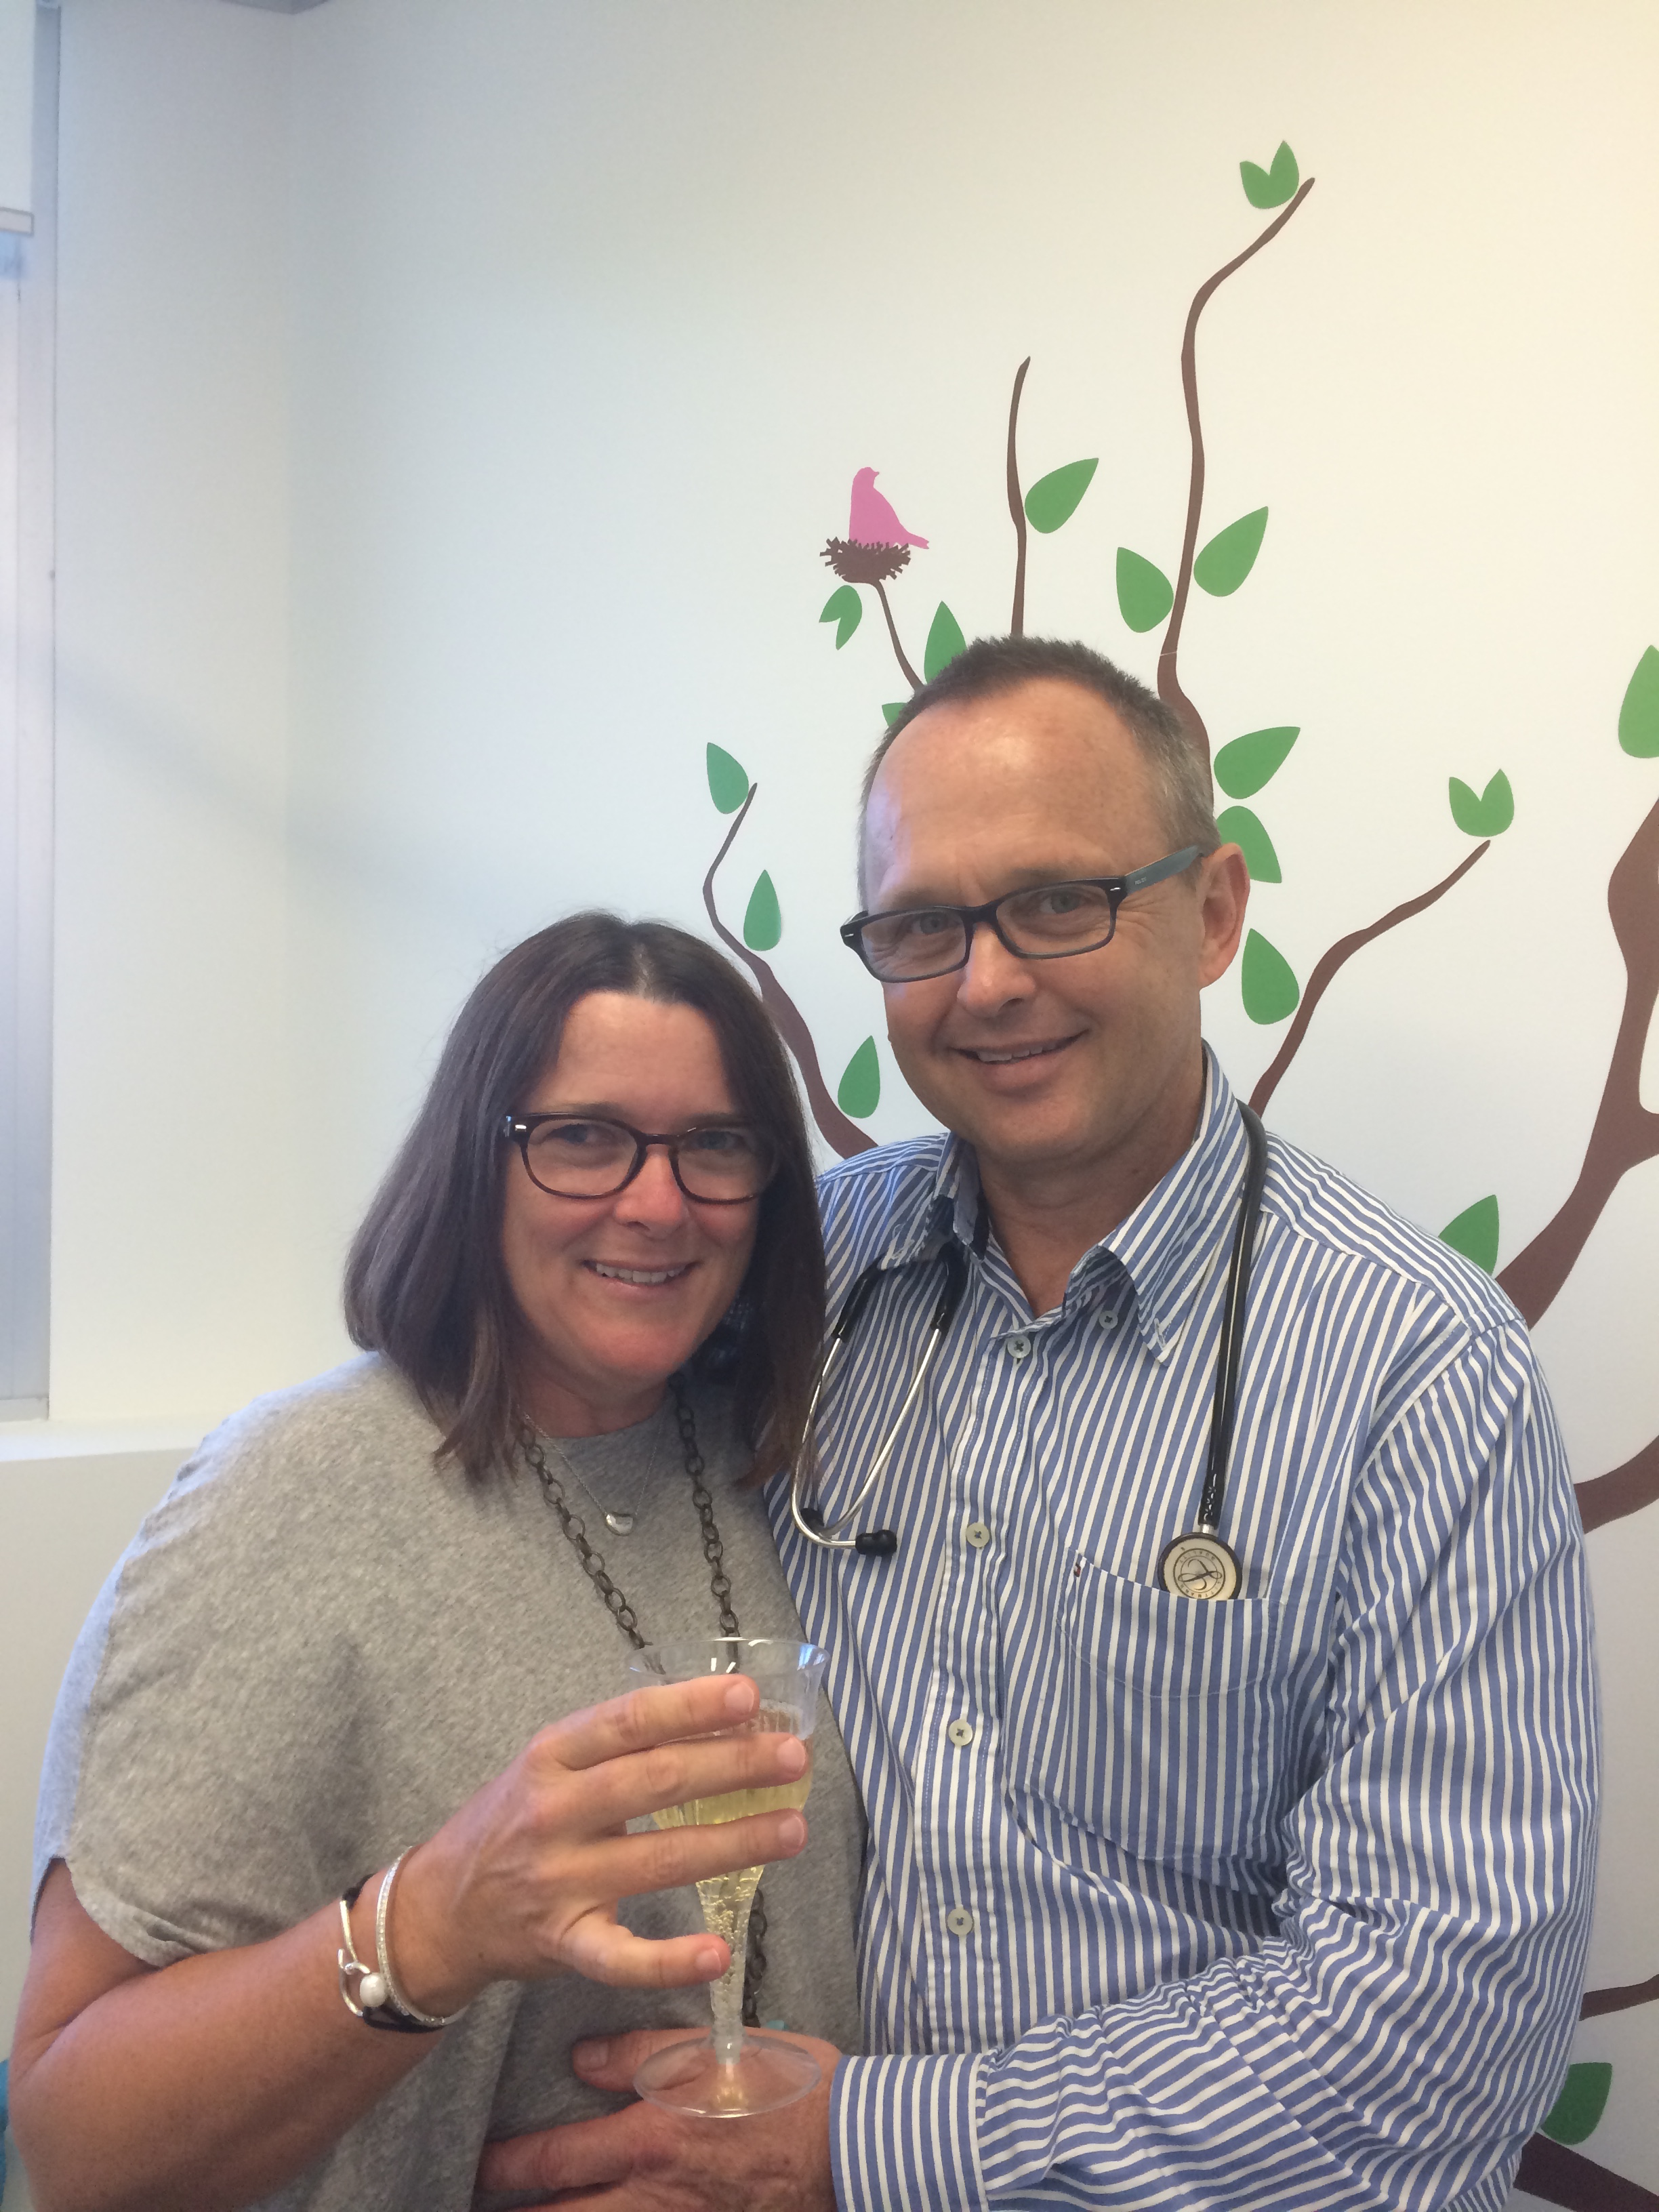 Dr Harte and his wife Anne celebrate Glenn's 20 years in paediatrics